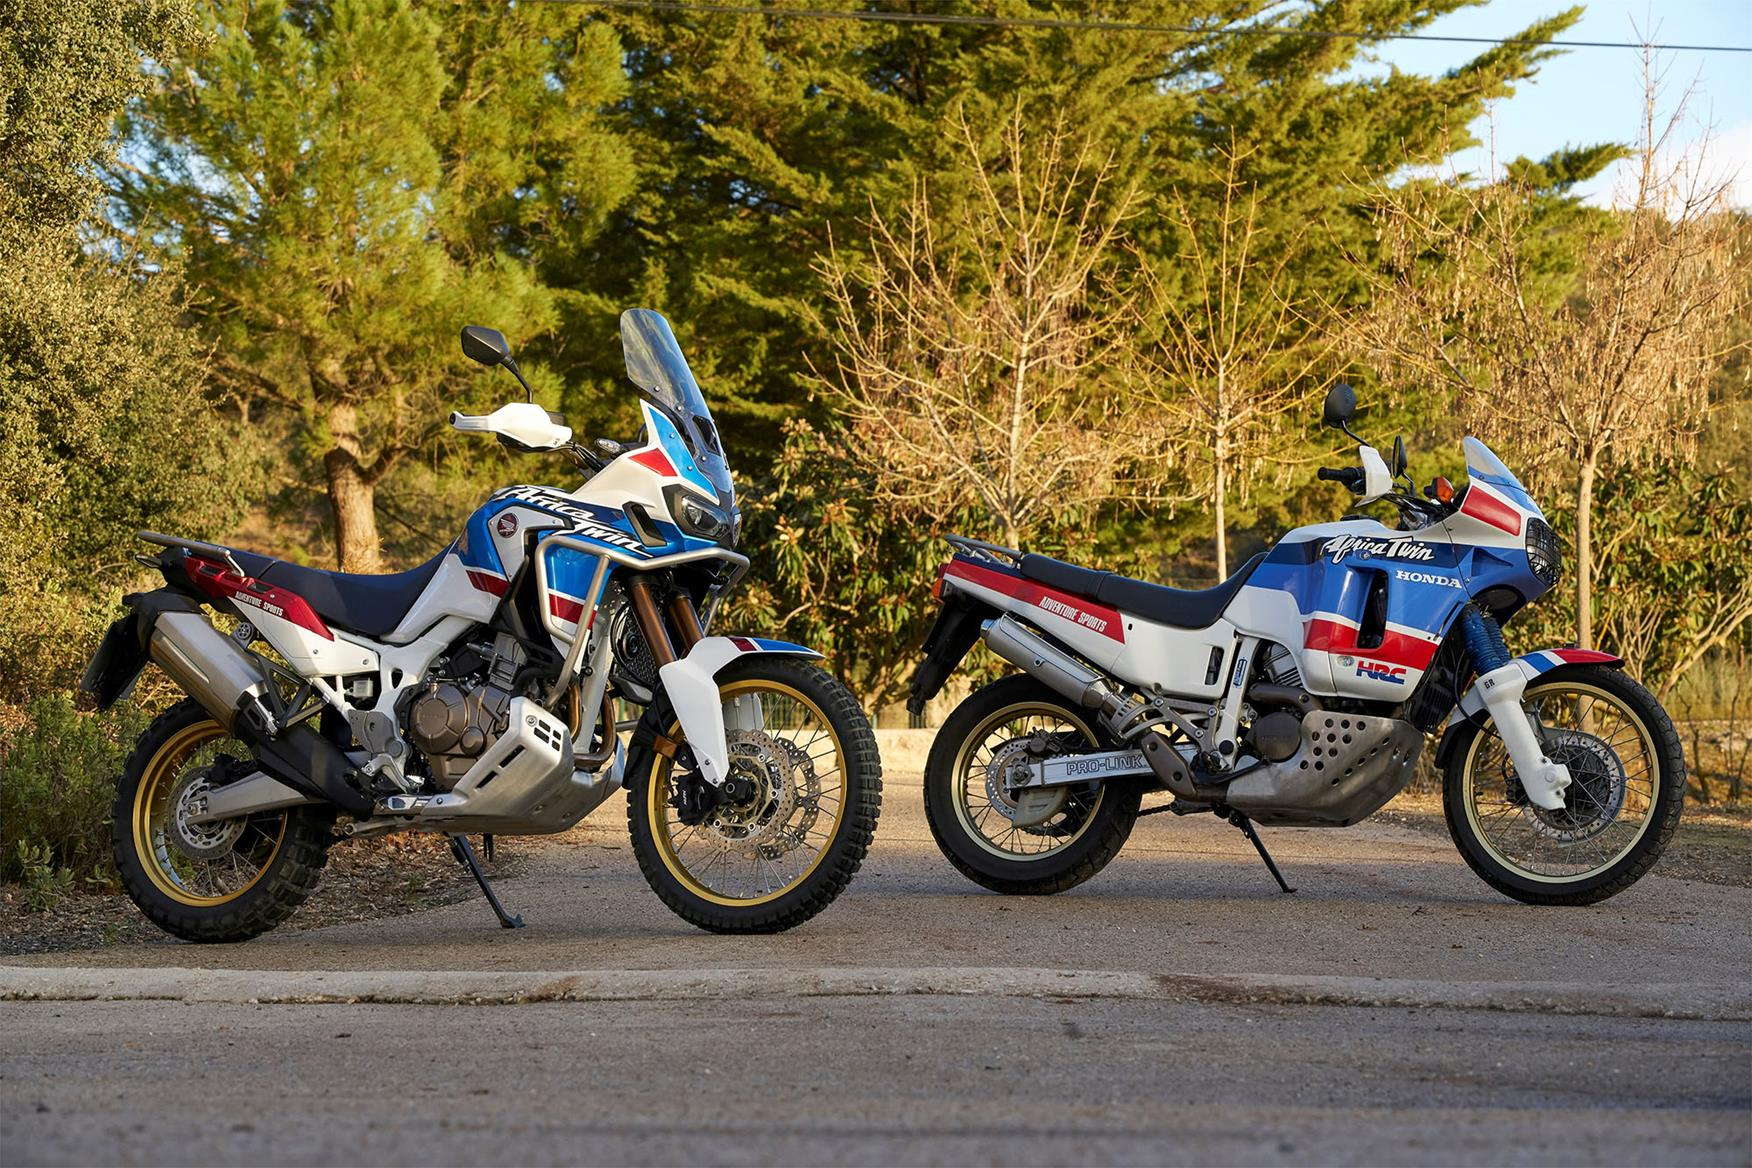 The existing Honda Africa Twin with the original